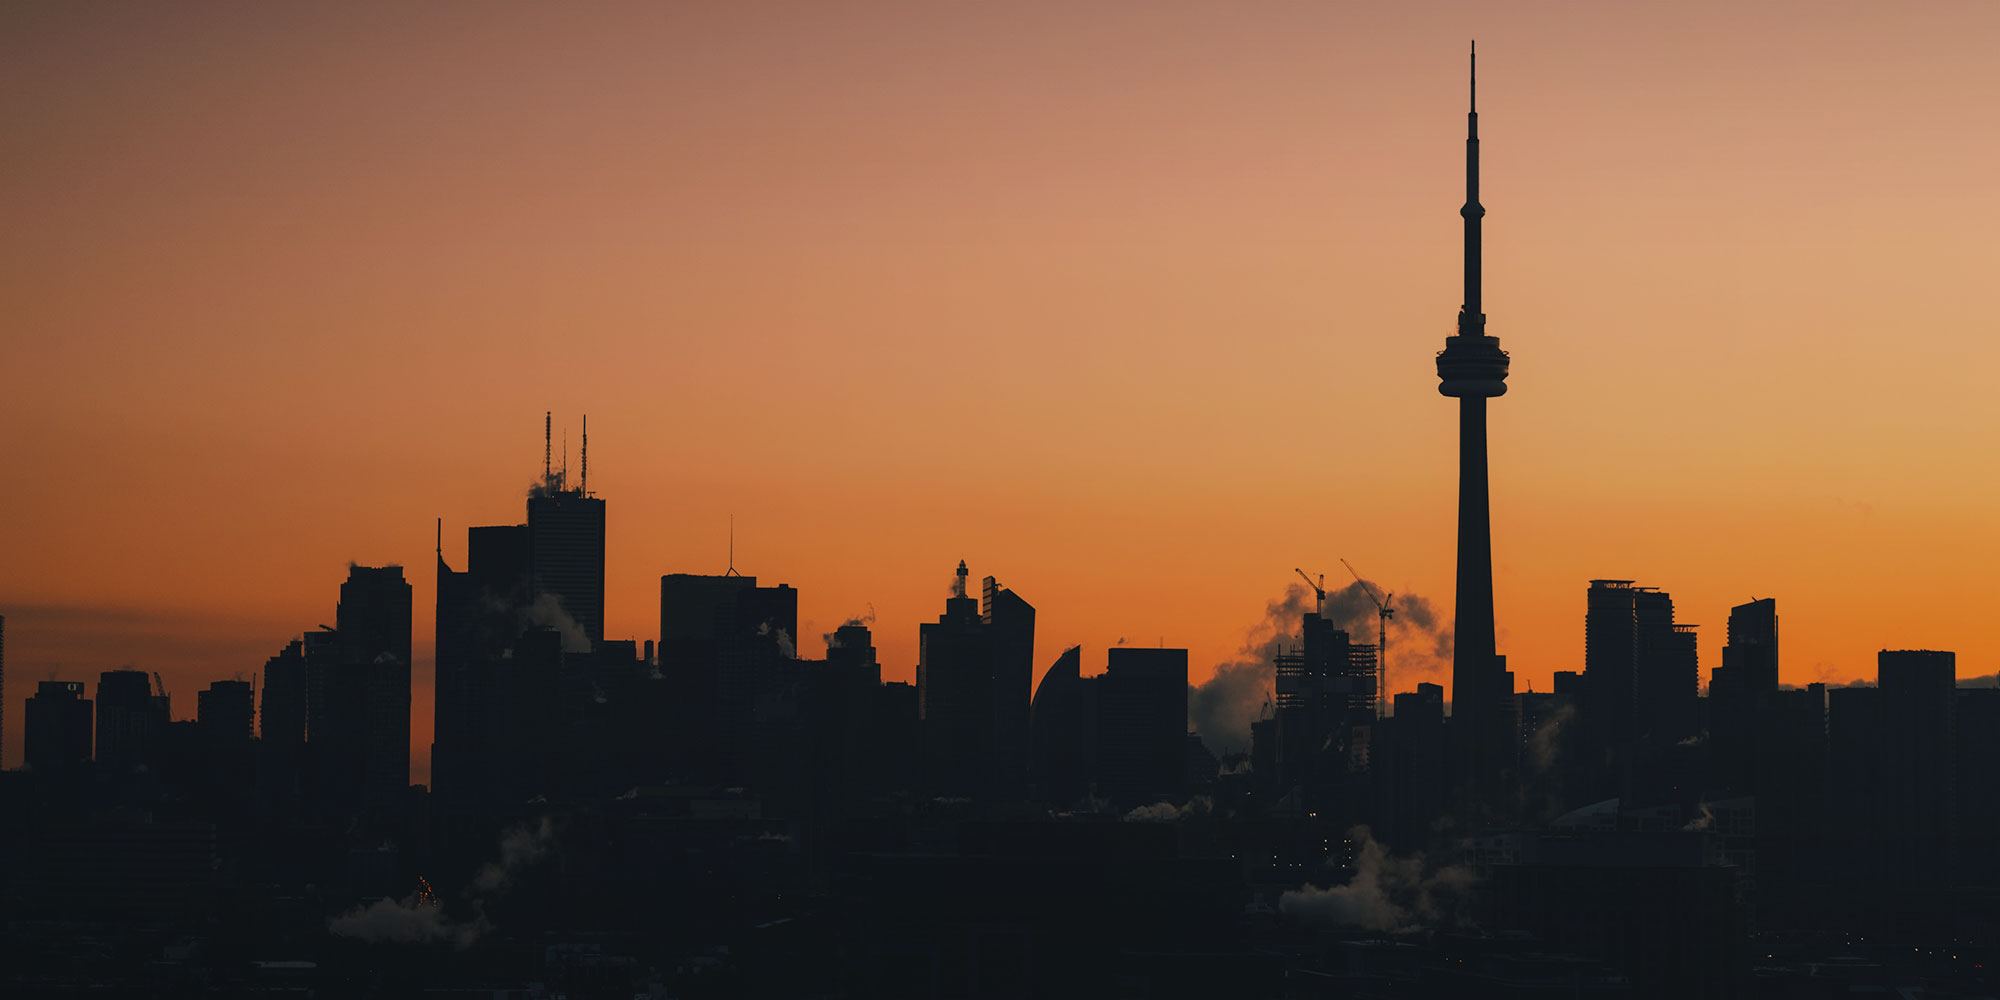 Toronto skyline with iconic CN Tower at dusk